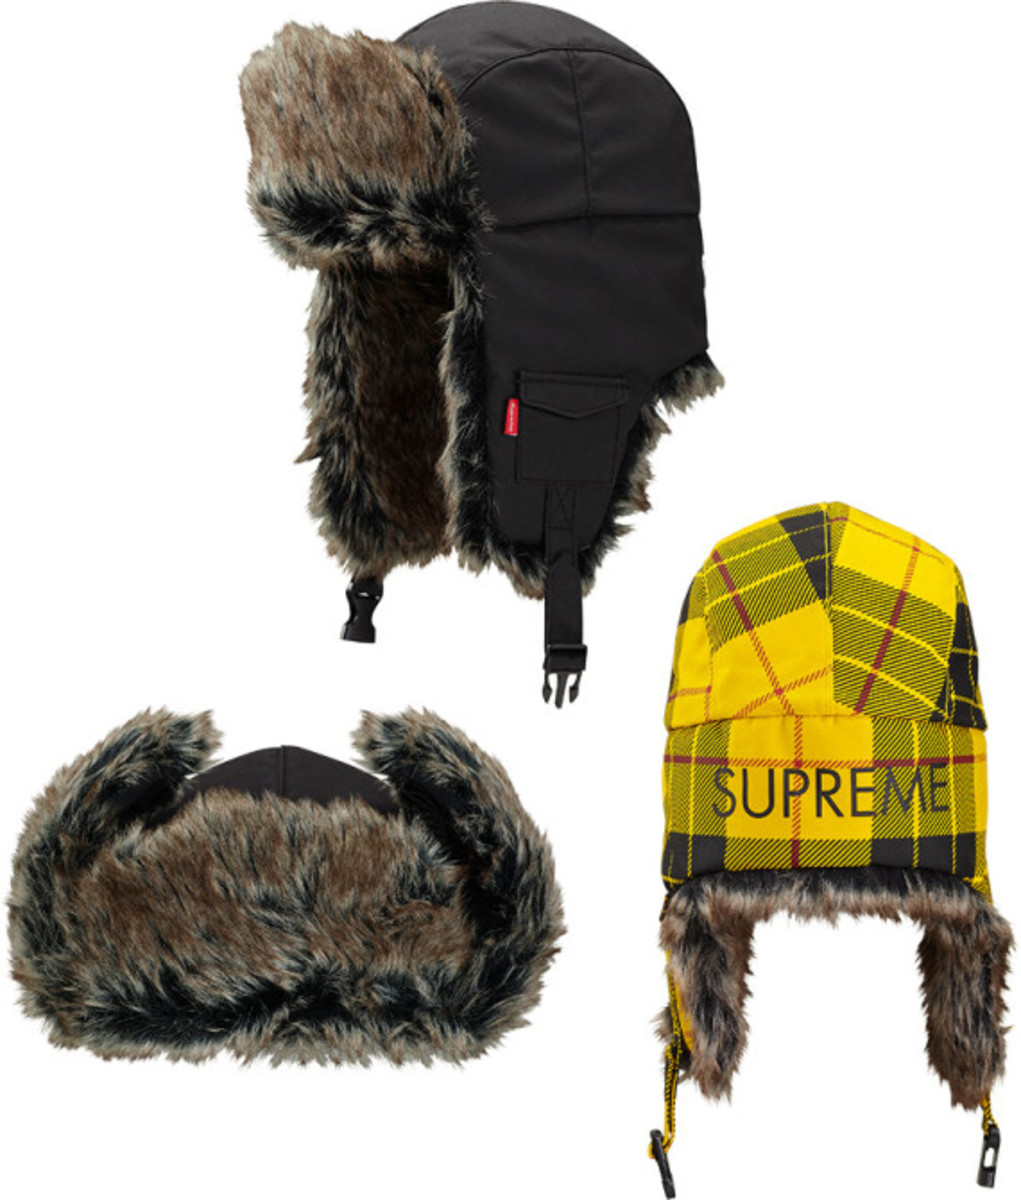 supreme-fall-winter-2014-caps-and-hats-collection-59